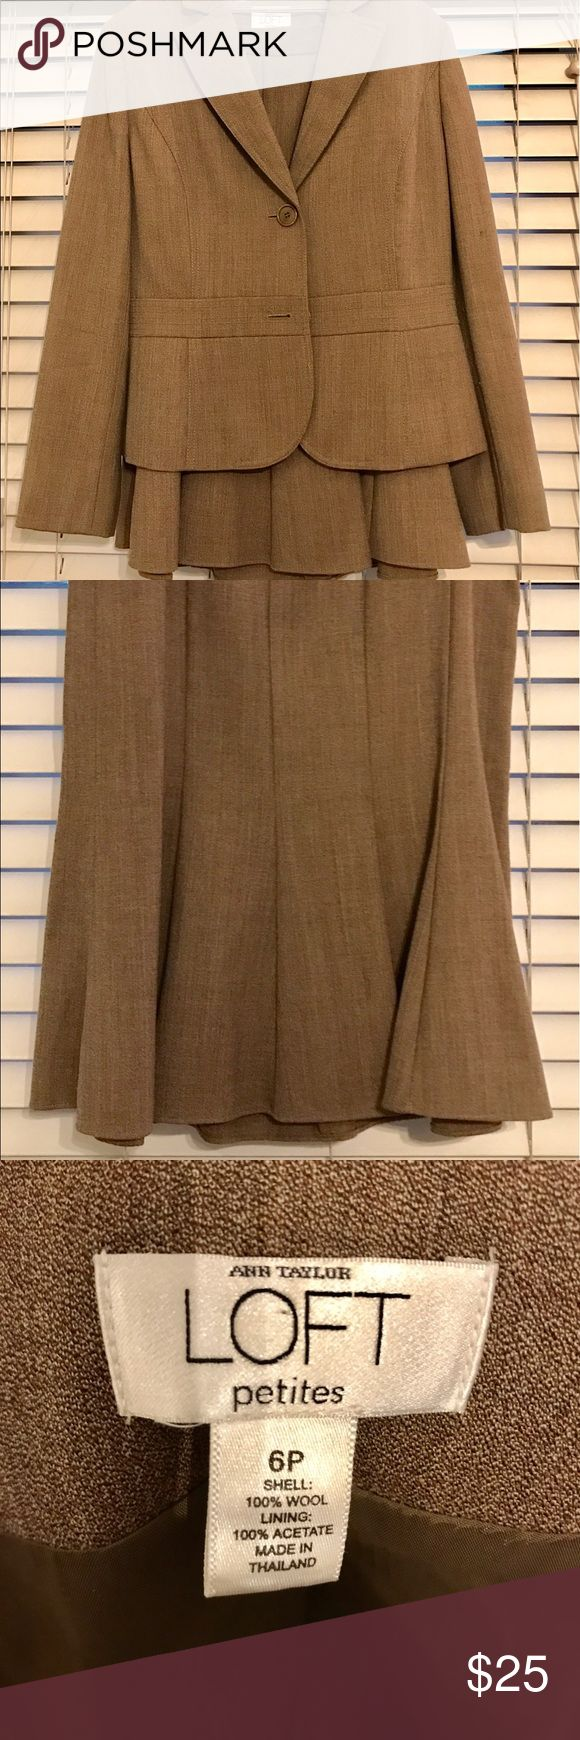 Like new! Ann Taylor Loft Petites Skirt- Suit I bought this a few years ago before a professional event and have worn it once. The color is a very light brown/very dark khaki and would look gorgeous with light nude pumps and a classic white button up blouse. The flounce at the bottom of the skirt is very flattering! It's fully lined, dry cleaned, and basically like new. Perfect for a young professional- don't miss this steal! Suits are expensive and you've gotta have a few classic ones for…